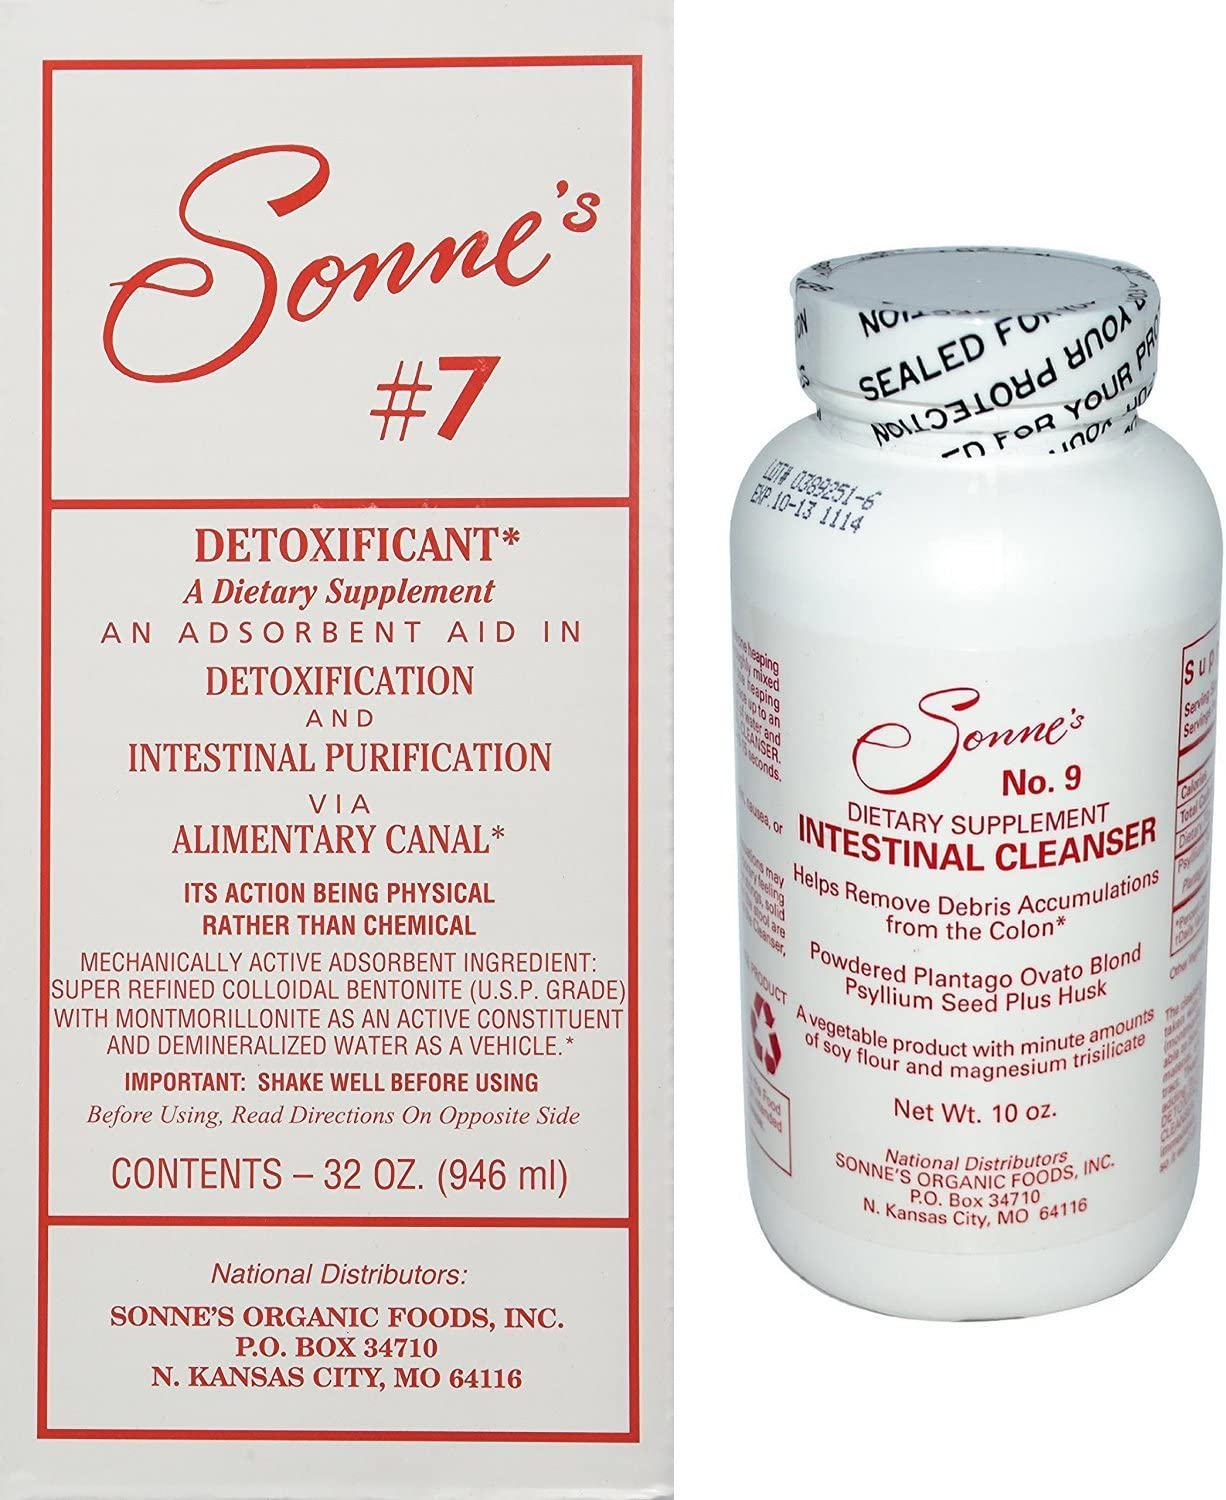 Sonne s Detoxification Pack Containing Detoxification No 7, 32 oz Bundled with Intestinal Cleanser No 9, 10 oz